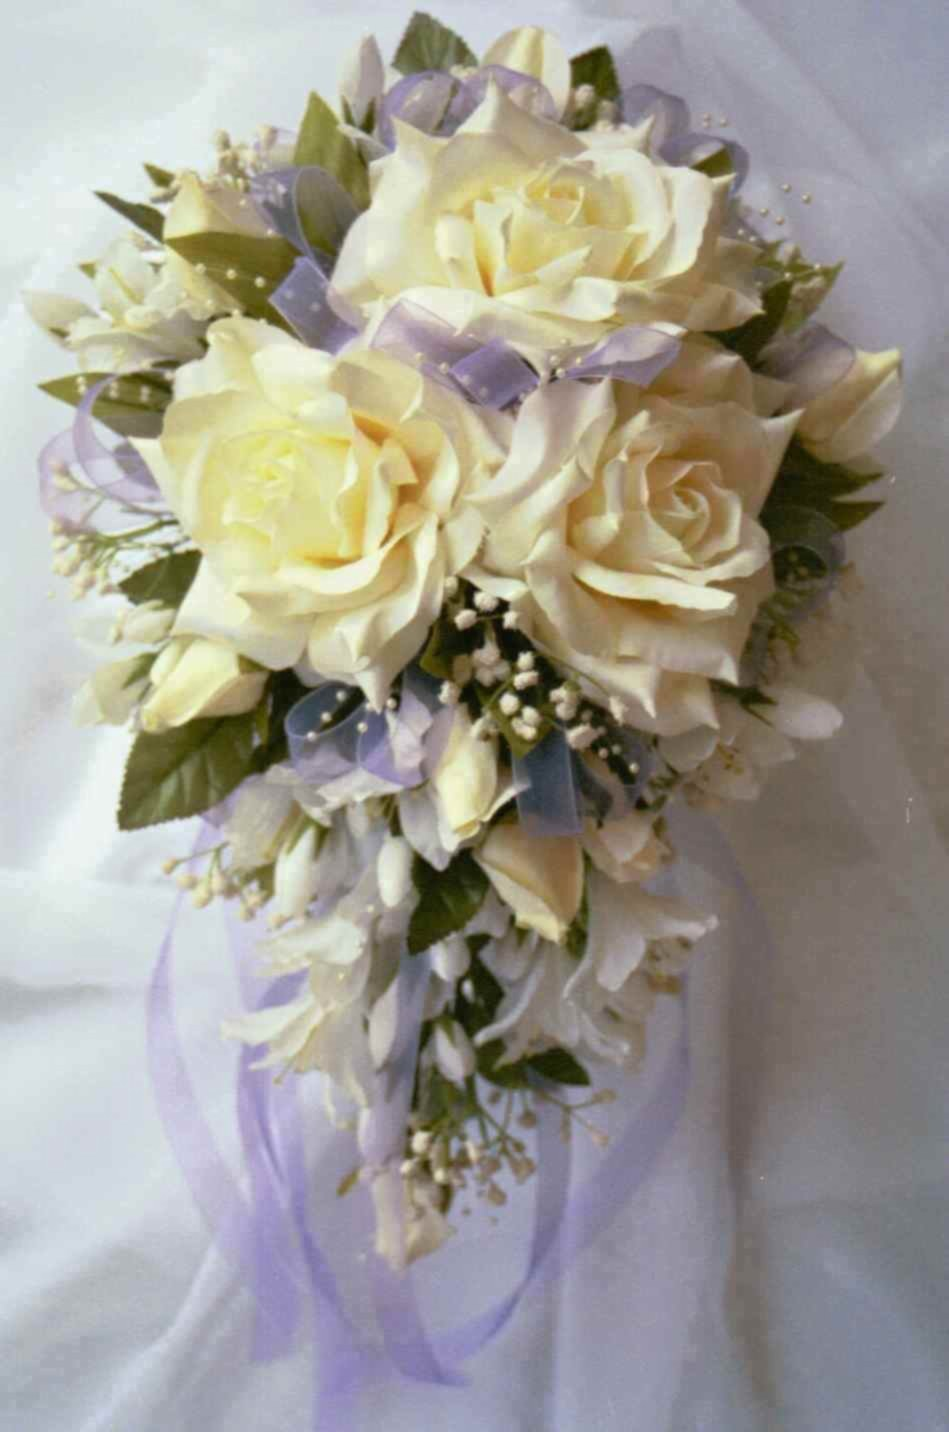 flowers bouquets for weddings about marriage marriage flower bouquet 2013 wedding 4252